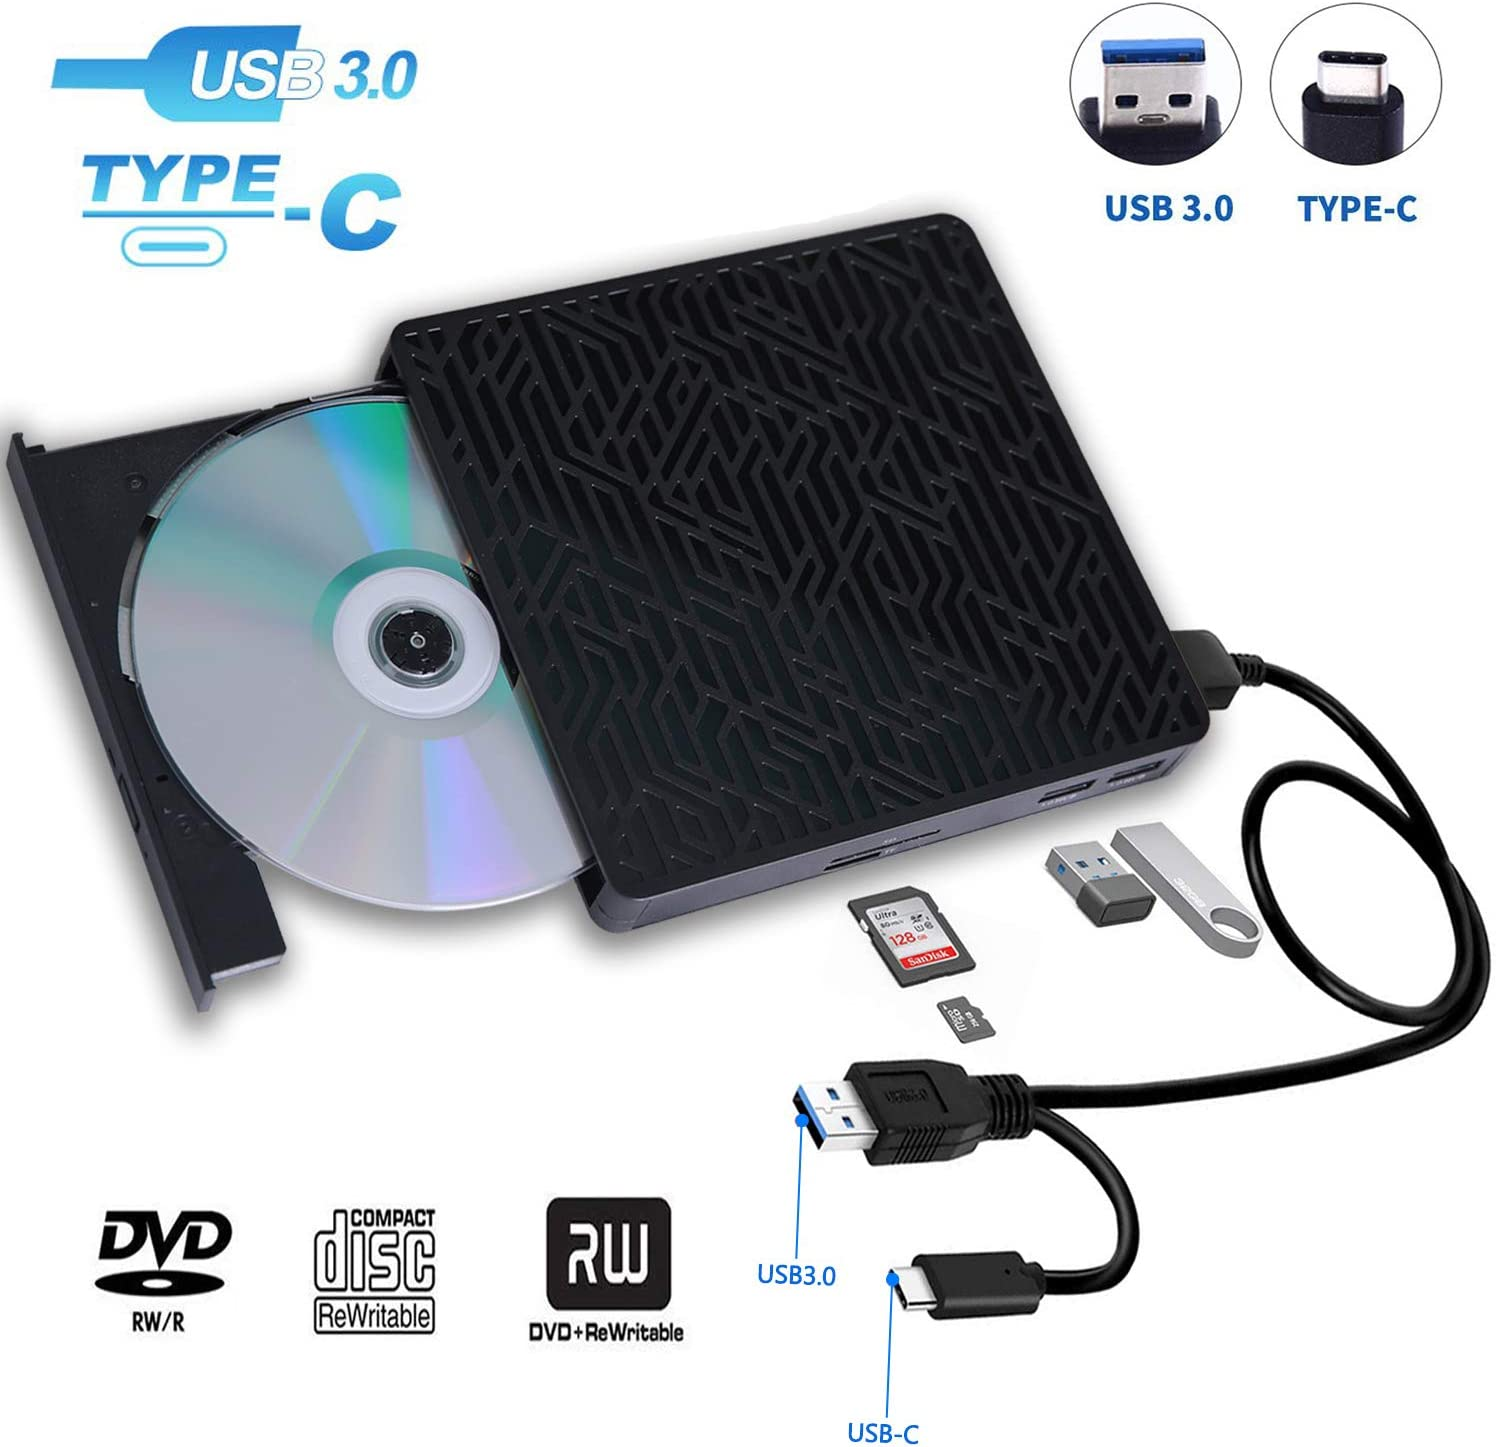 USB 3.0&USB-C External CD DVD Drive,Multifunctional External CD/DVD +/- RW Burner Player Writer Support SD/TF Card/2 USB 3.0 Ports/Charging,Compatible with Mac OS/Windows/MacBook/Laptop/Desktop-Black